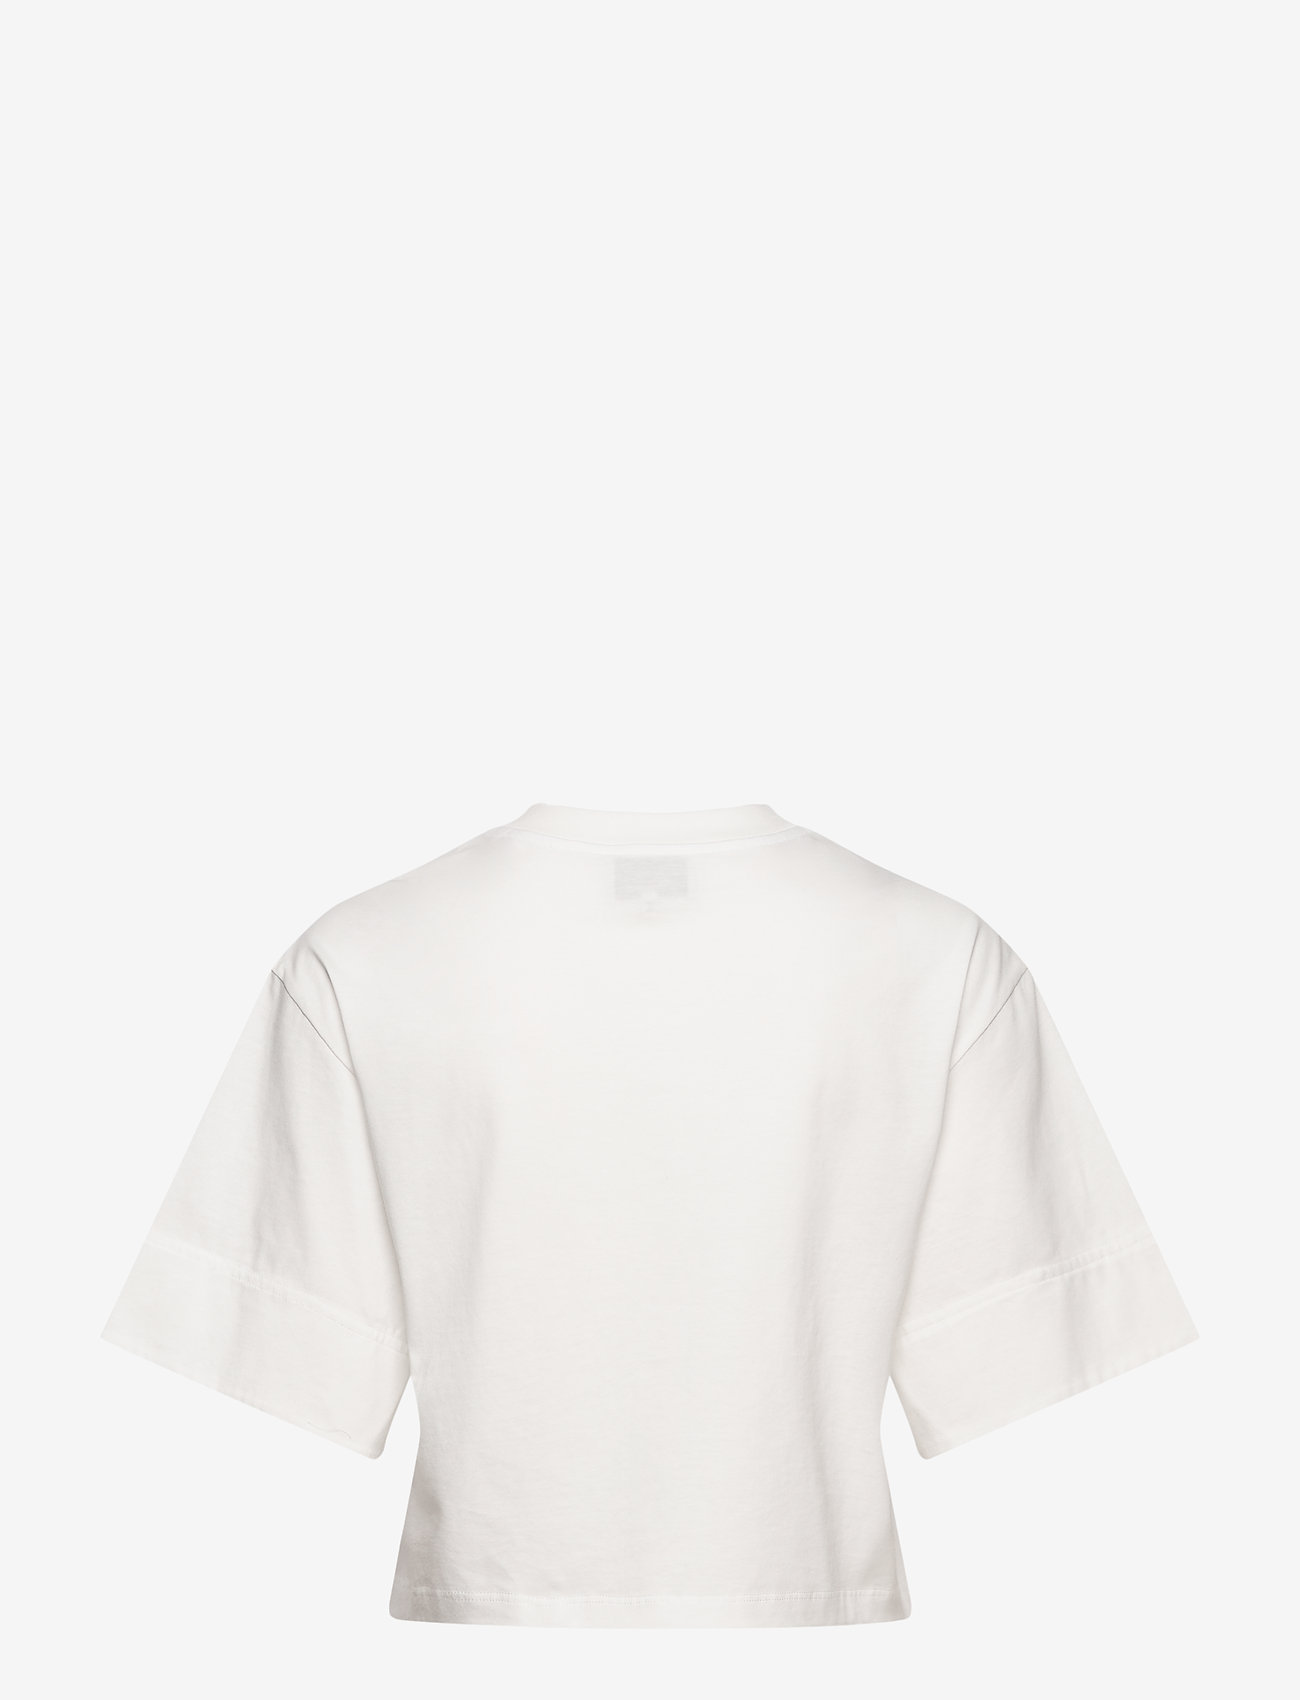 3.1 Phillip Lim - SS BANANA EMBROIDERED TSHIRT - t-shirts - offwhite - 1